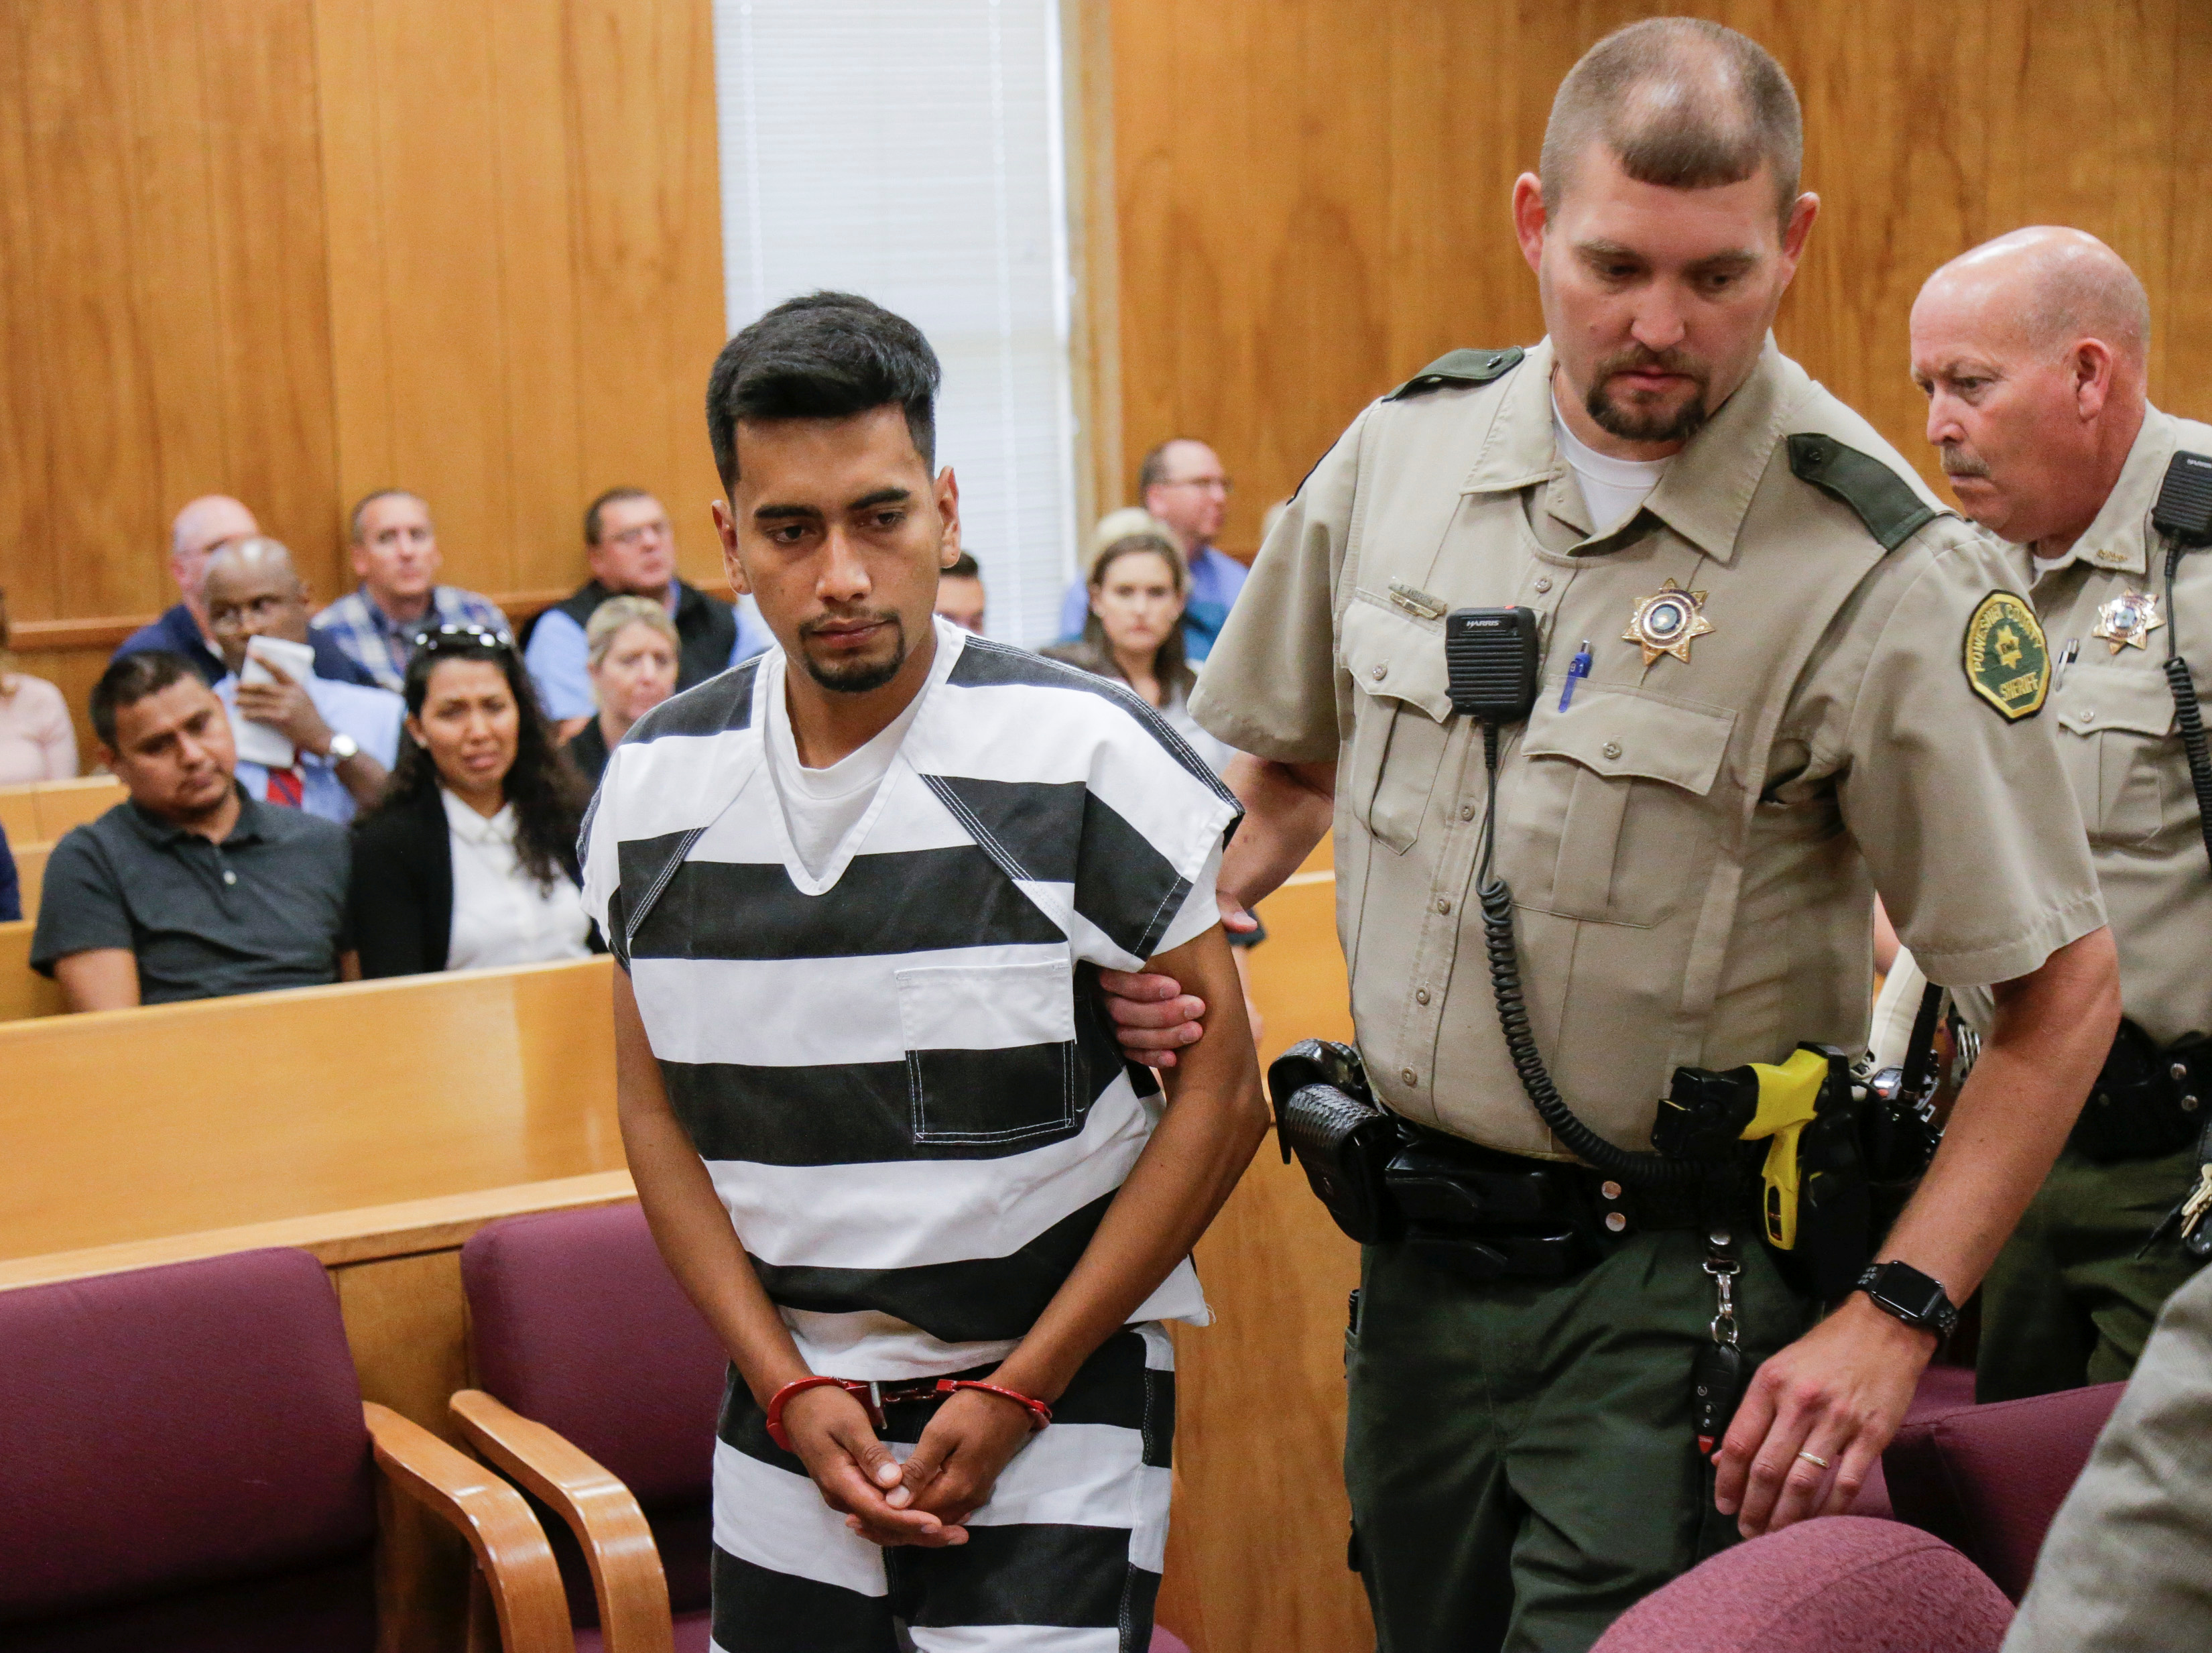 Cristhian Rivera, 24, accused of killing University of Iowa student Mollie Tibbetts, is led from the courtroom after making his initial appearance on a charge of first-degree murder during at the Poweshiek County Courthouse in Montezuma, Iowa, U.S., August 22, 2018. Jim Slosiarek/The Gazette/Pool via REUTERS